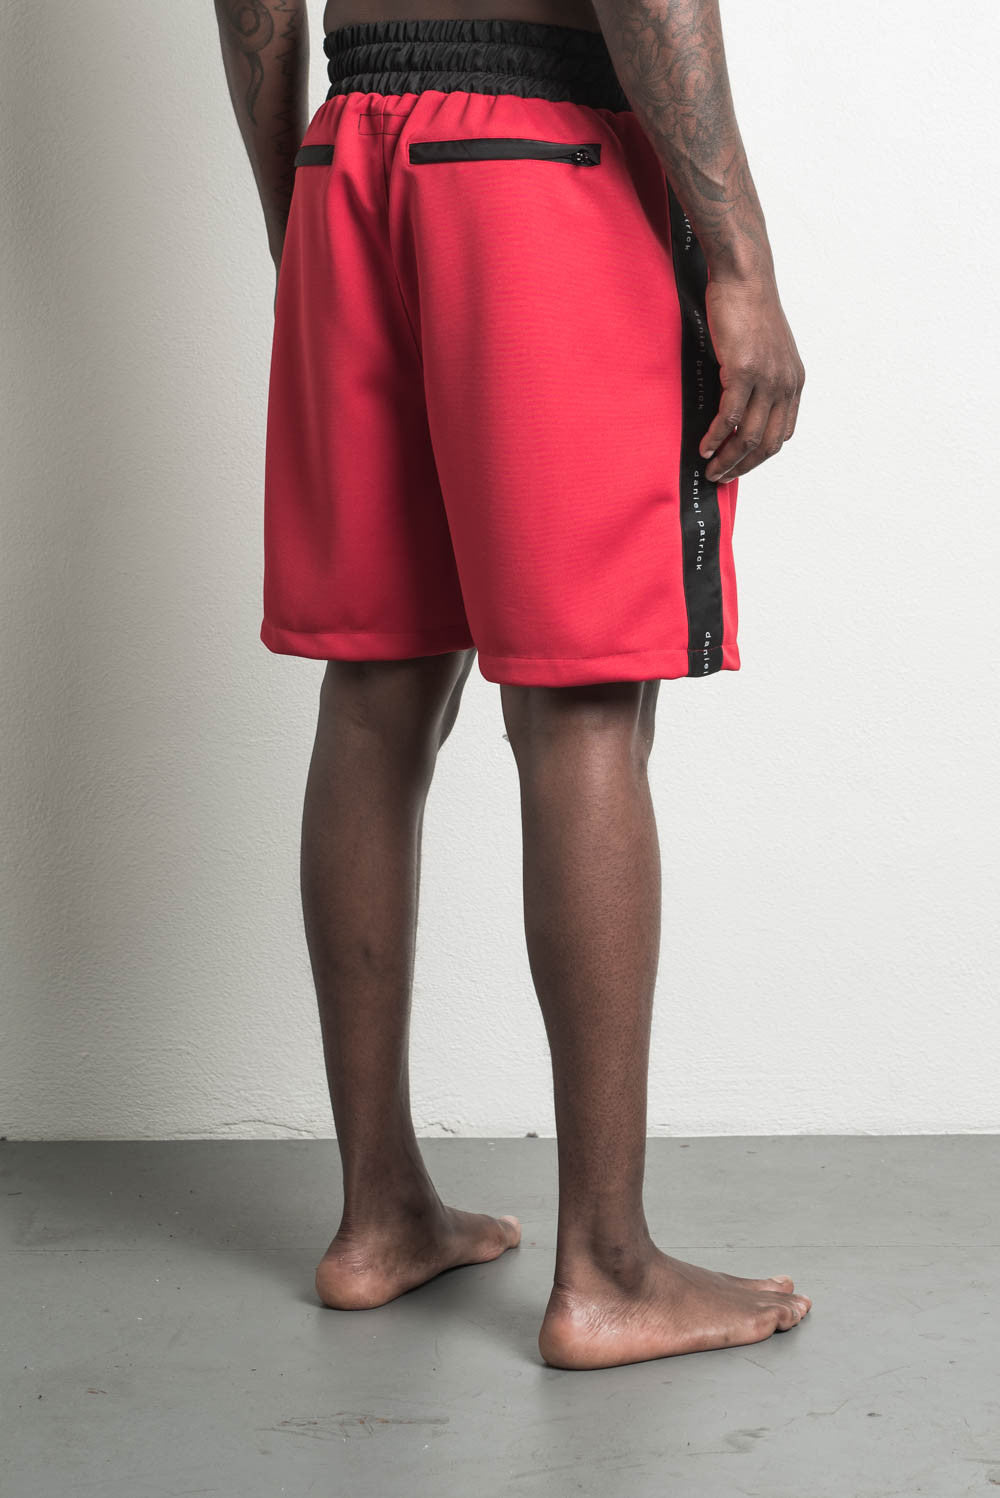 roaming gym short in red/black by daniel patrick